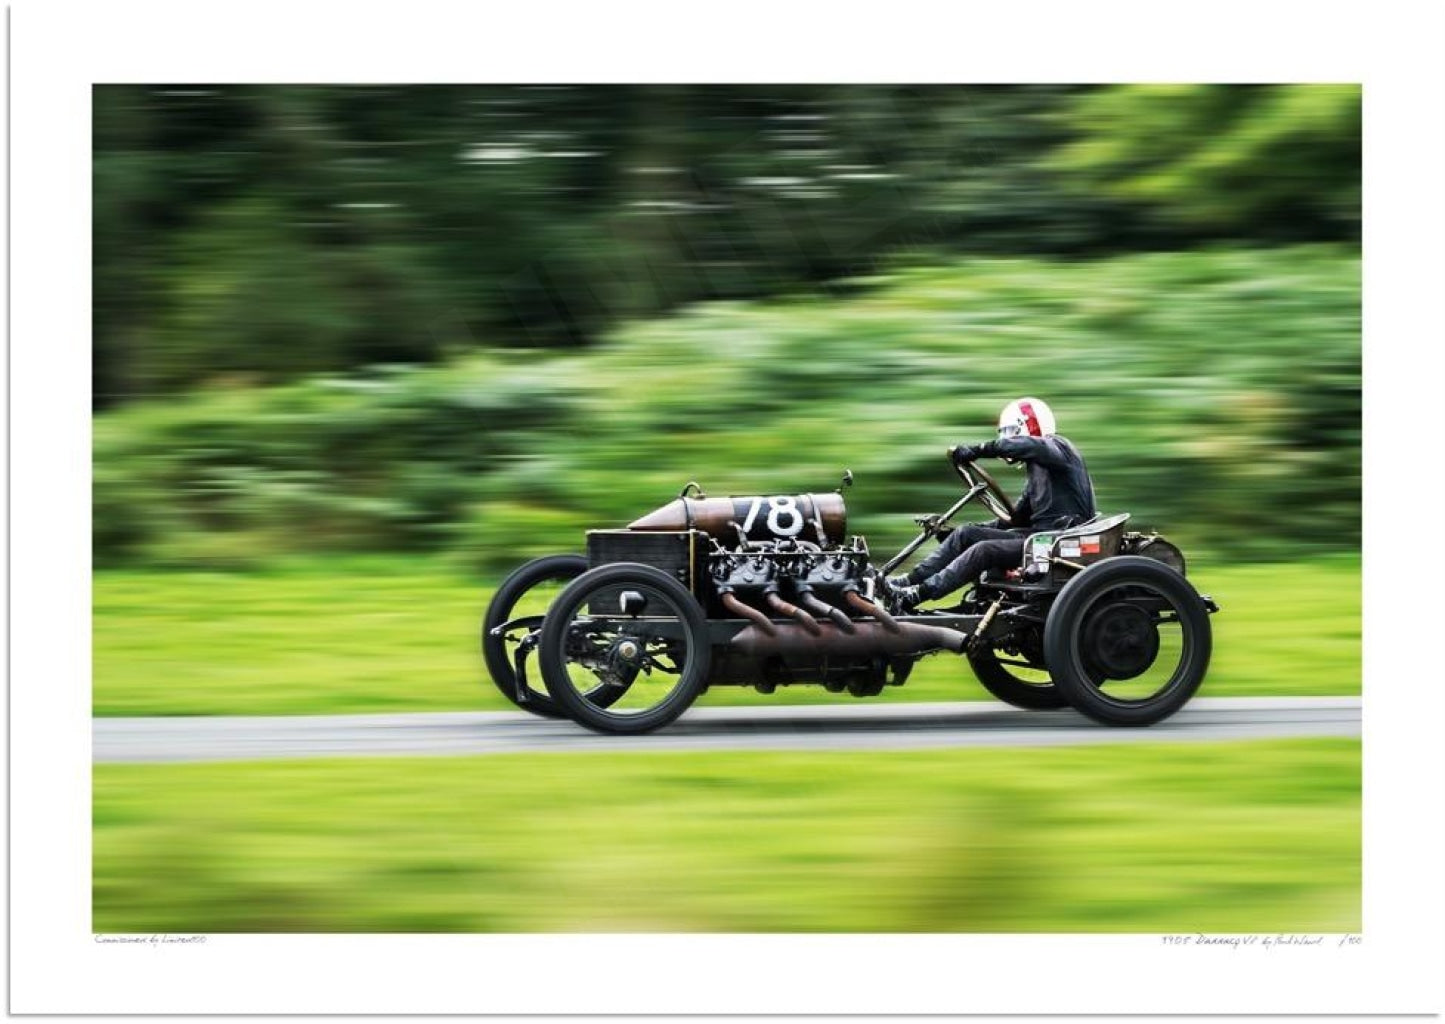 1905 Darracq 200hp V8 at Loton Park Hill Climb